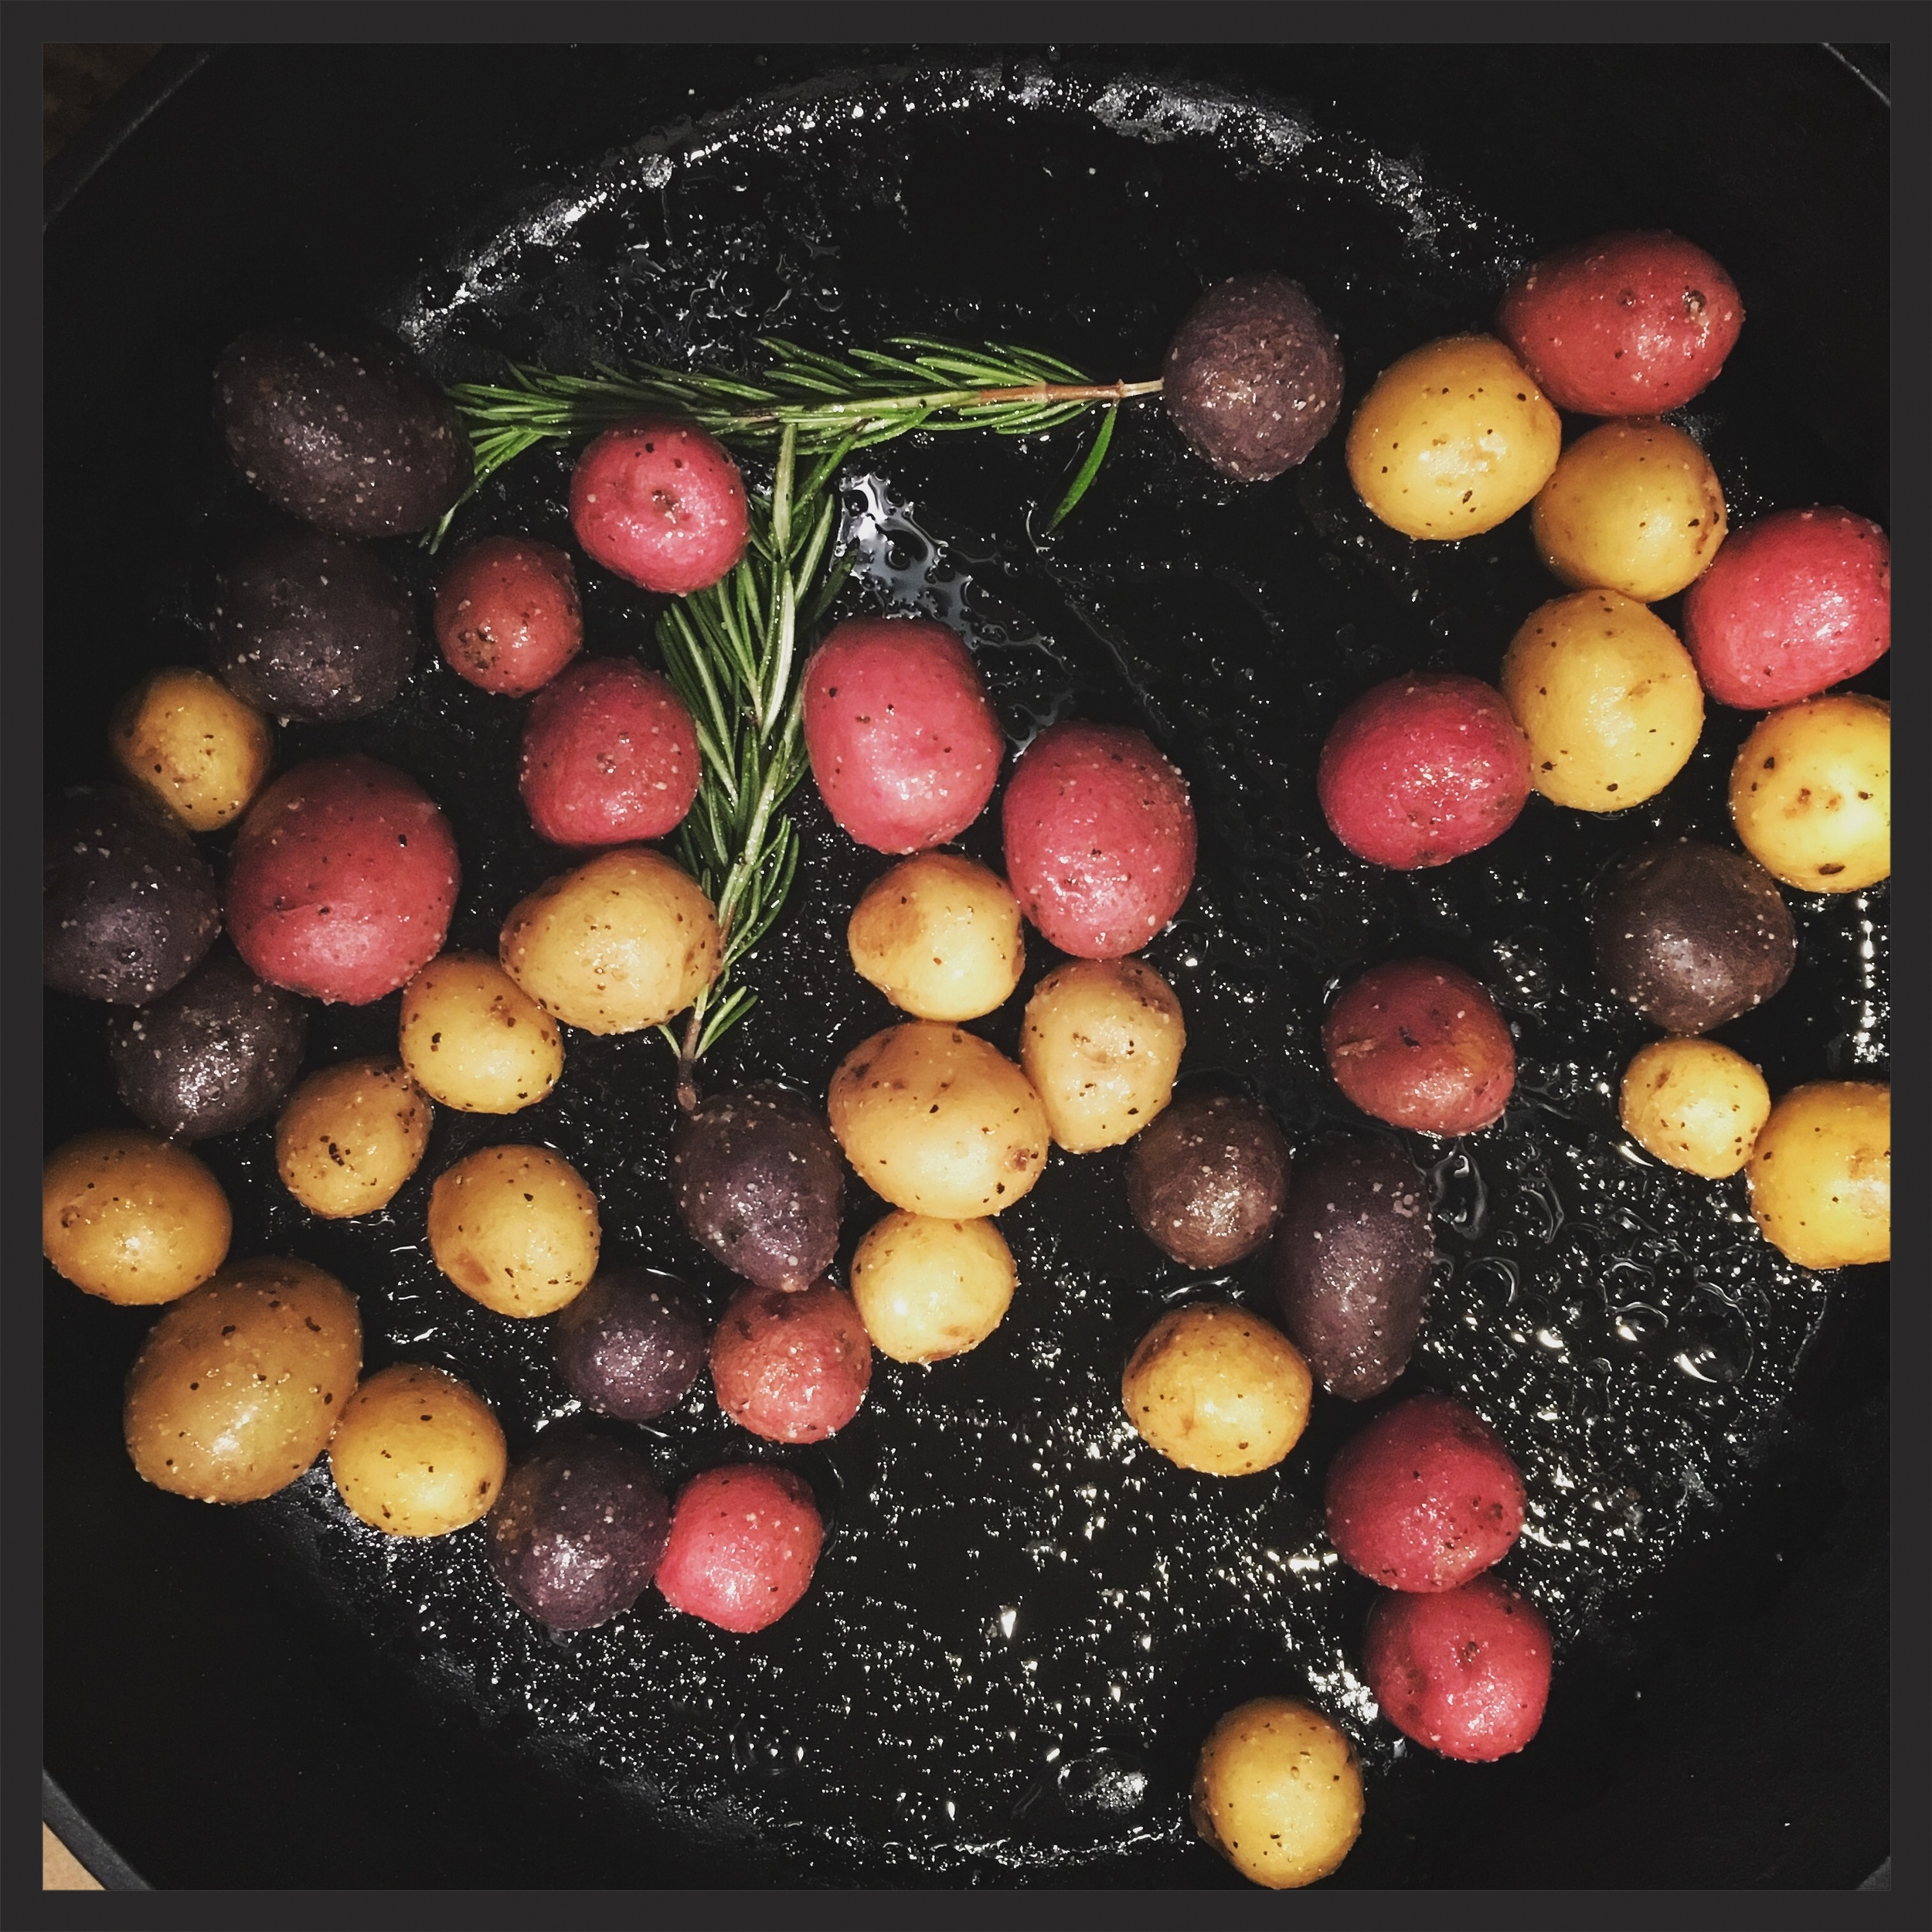 Oven-roasted white potatoes with rosemary and seasonings.